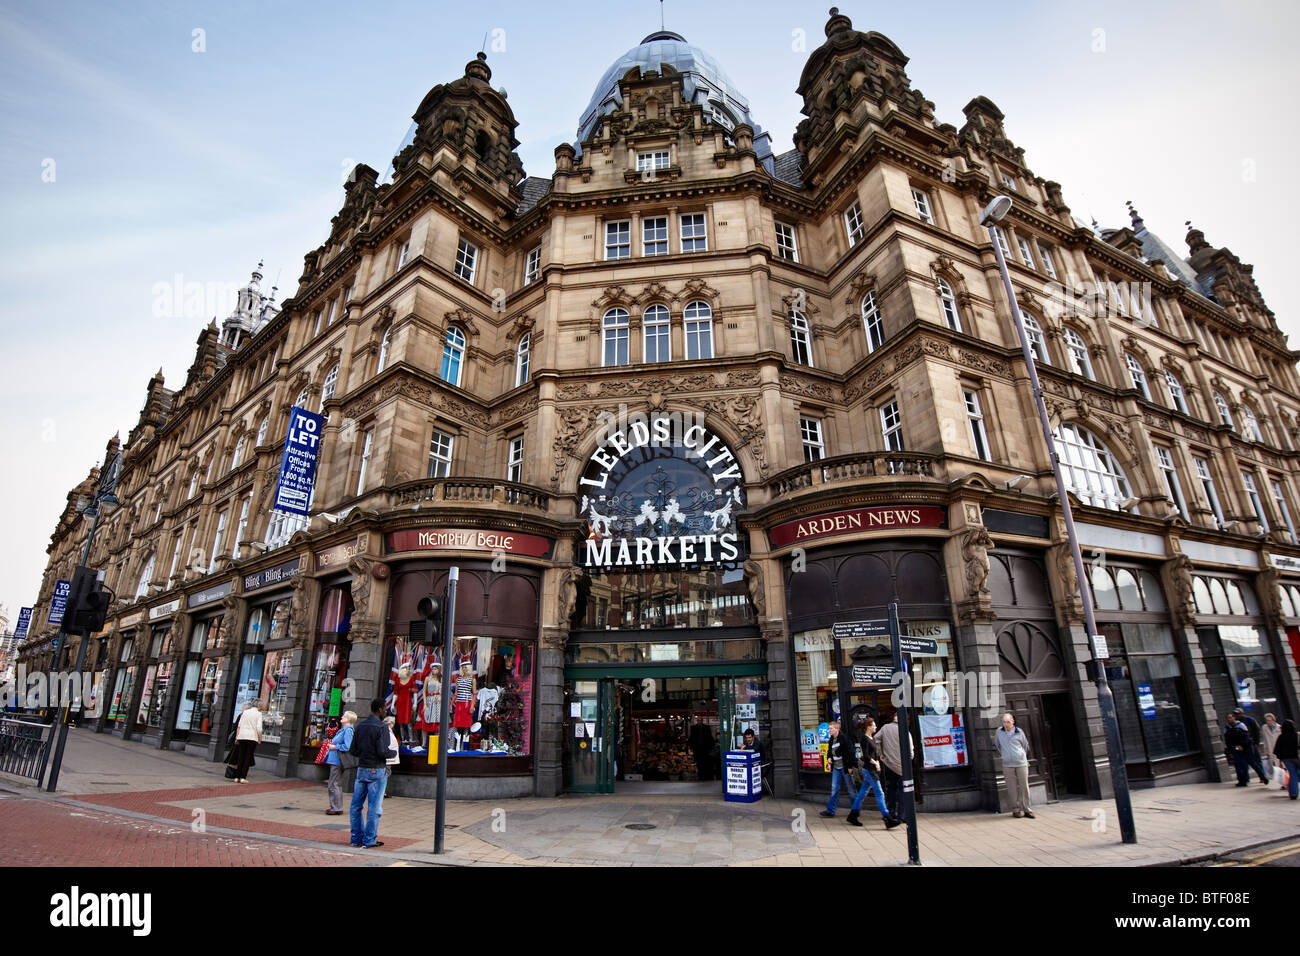 Leeds City Markets,also known as Leeds Kirkgate Market, West Yorkshire - Stock Image